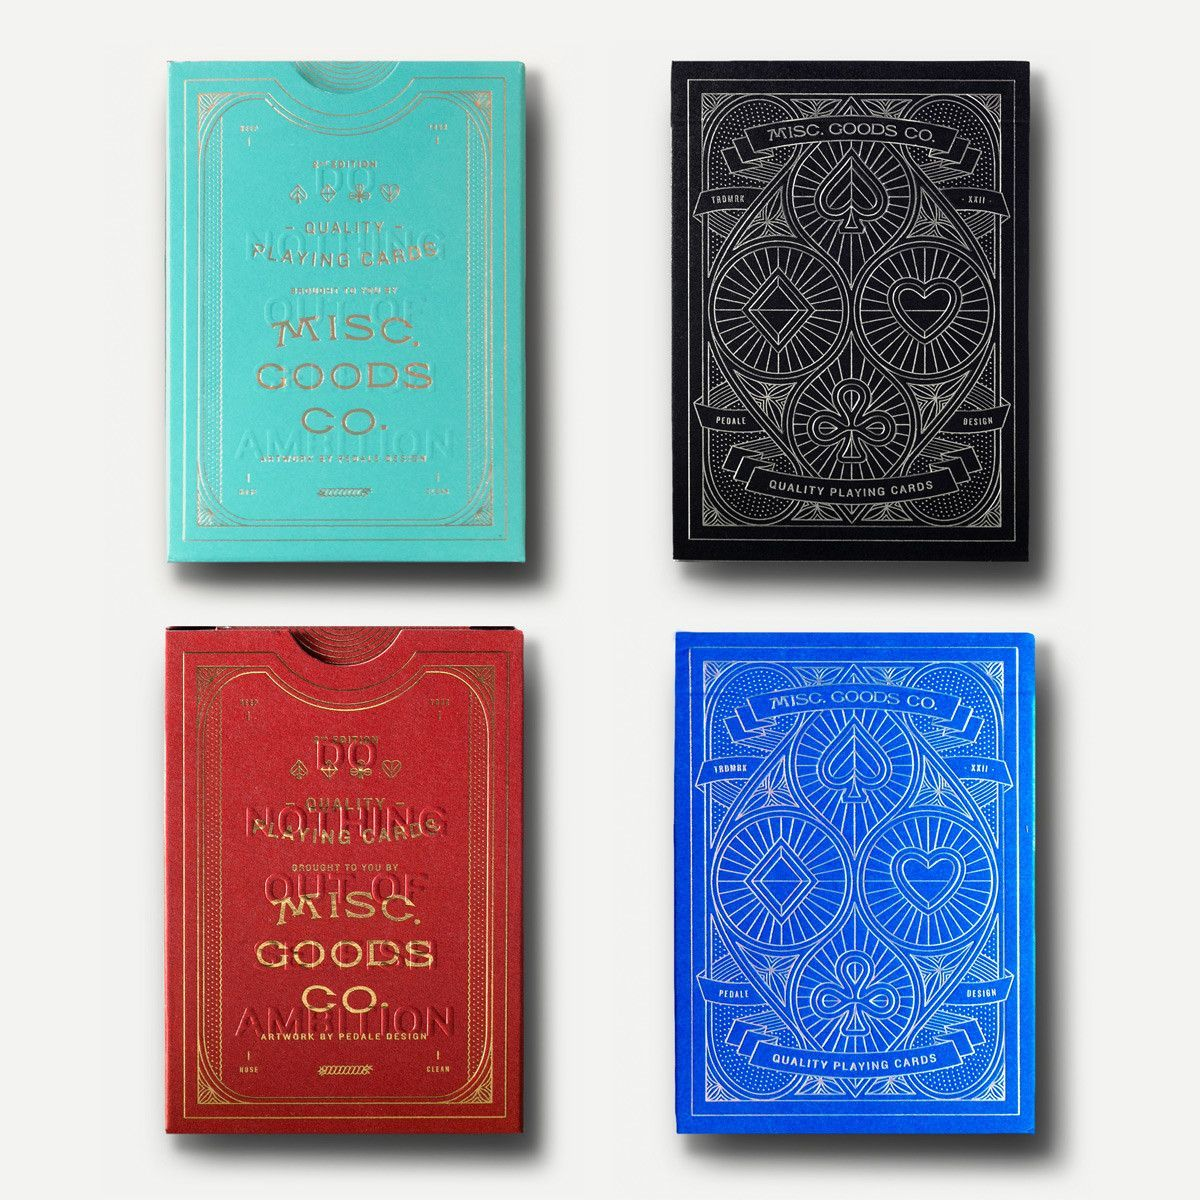 Misc goods co playing cards playing cards symbols and fonts playing cards biocorpaavc